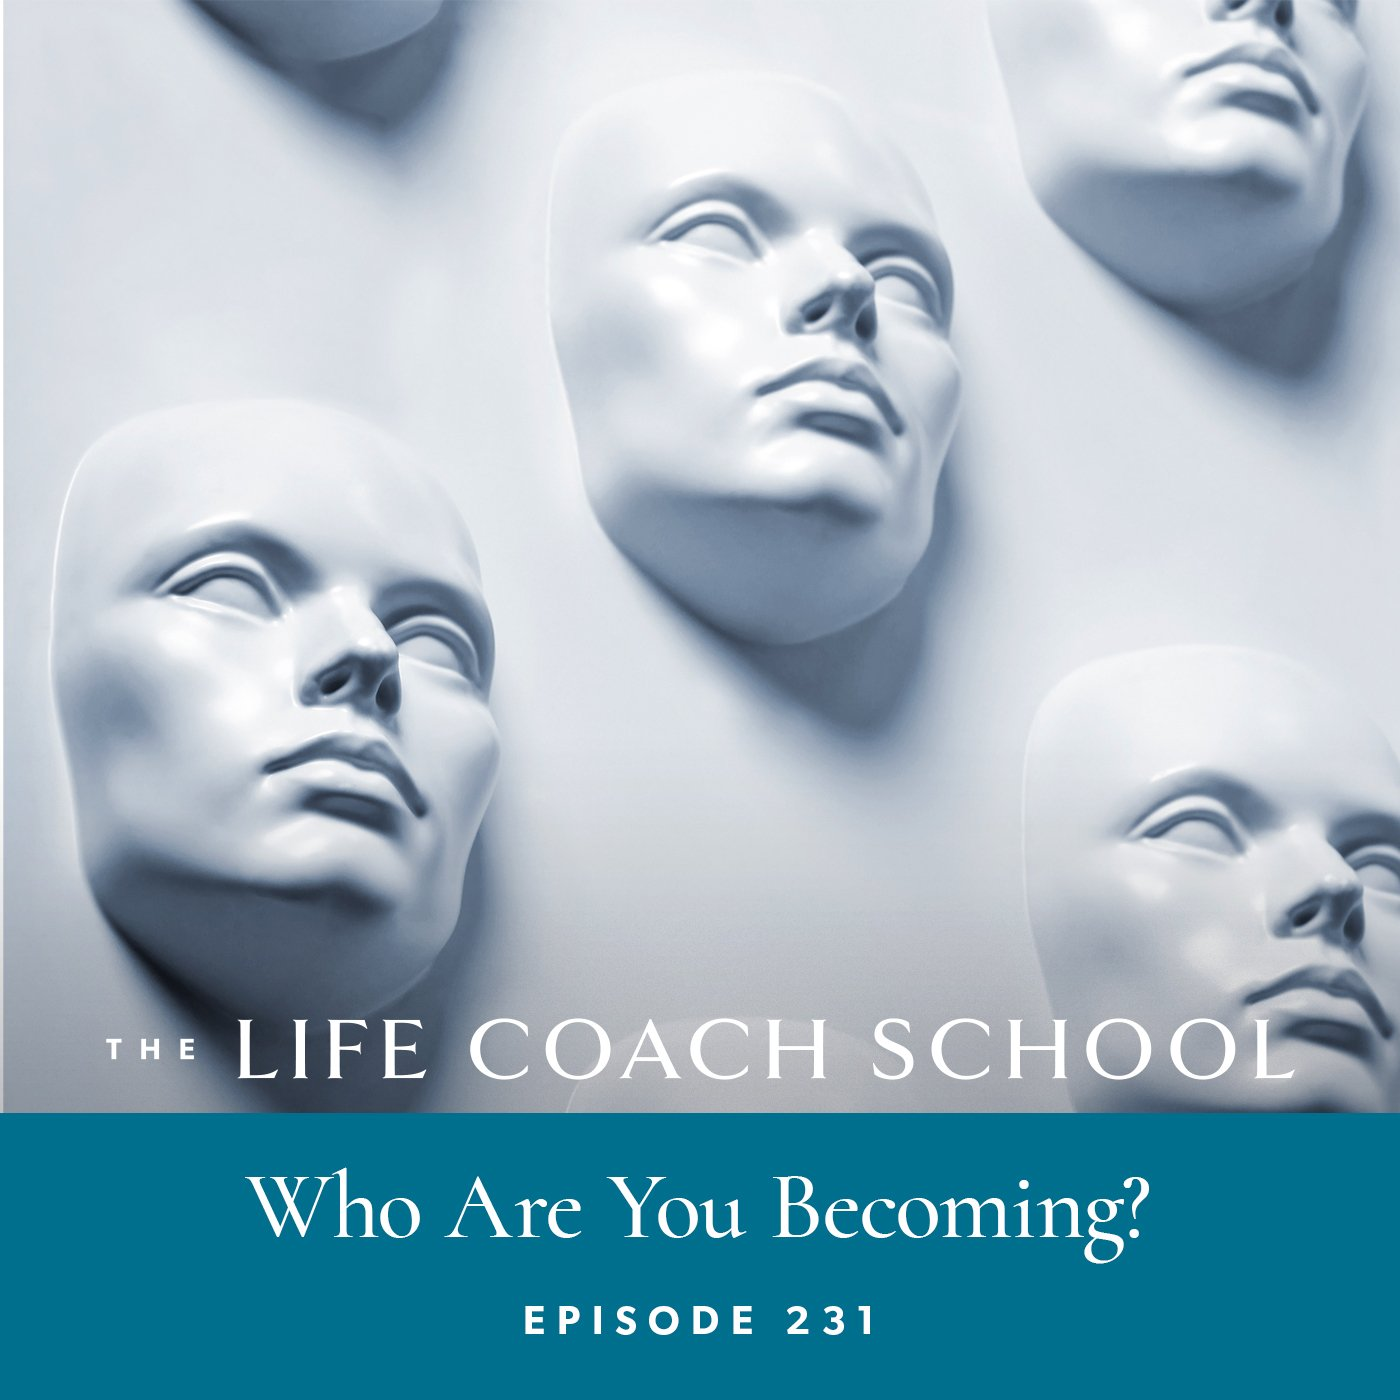 The Life Coach School Podcast with Brooke Castillo | Episode 231 | Who Are You Becoming?